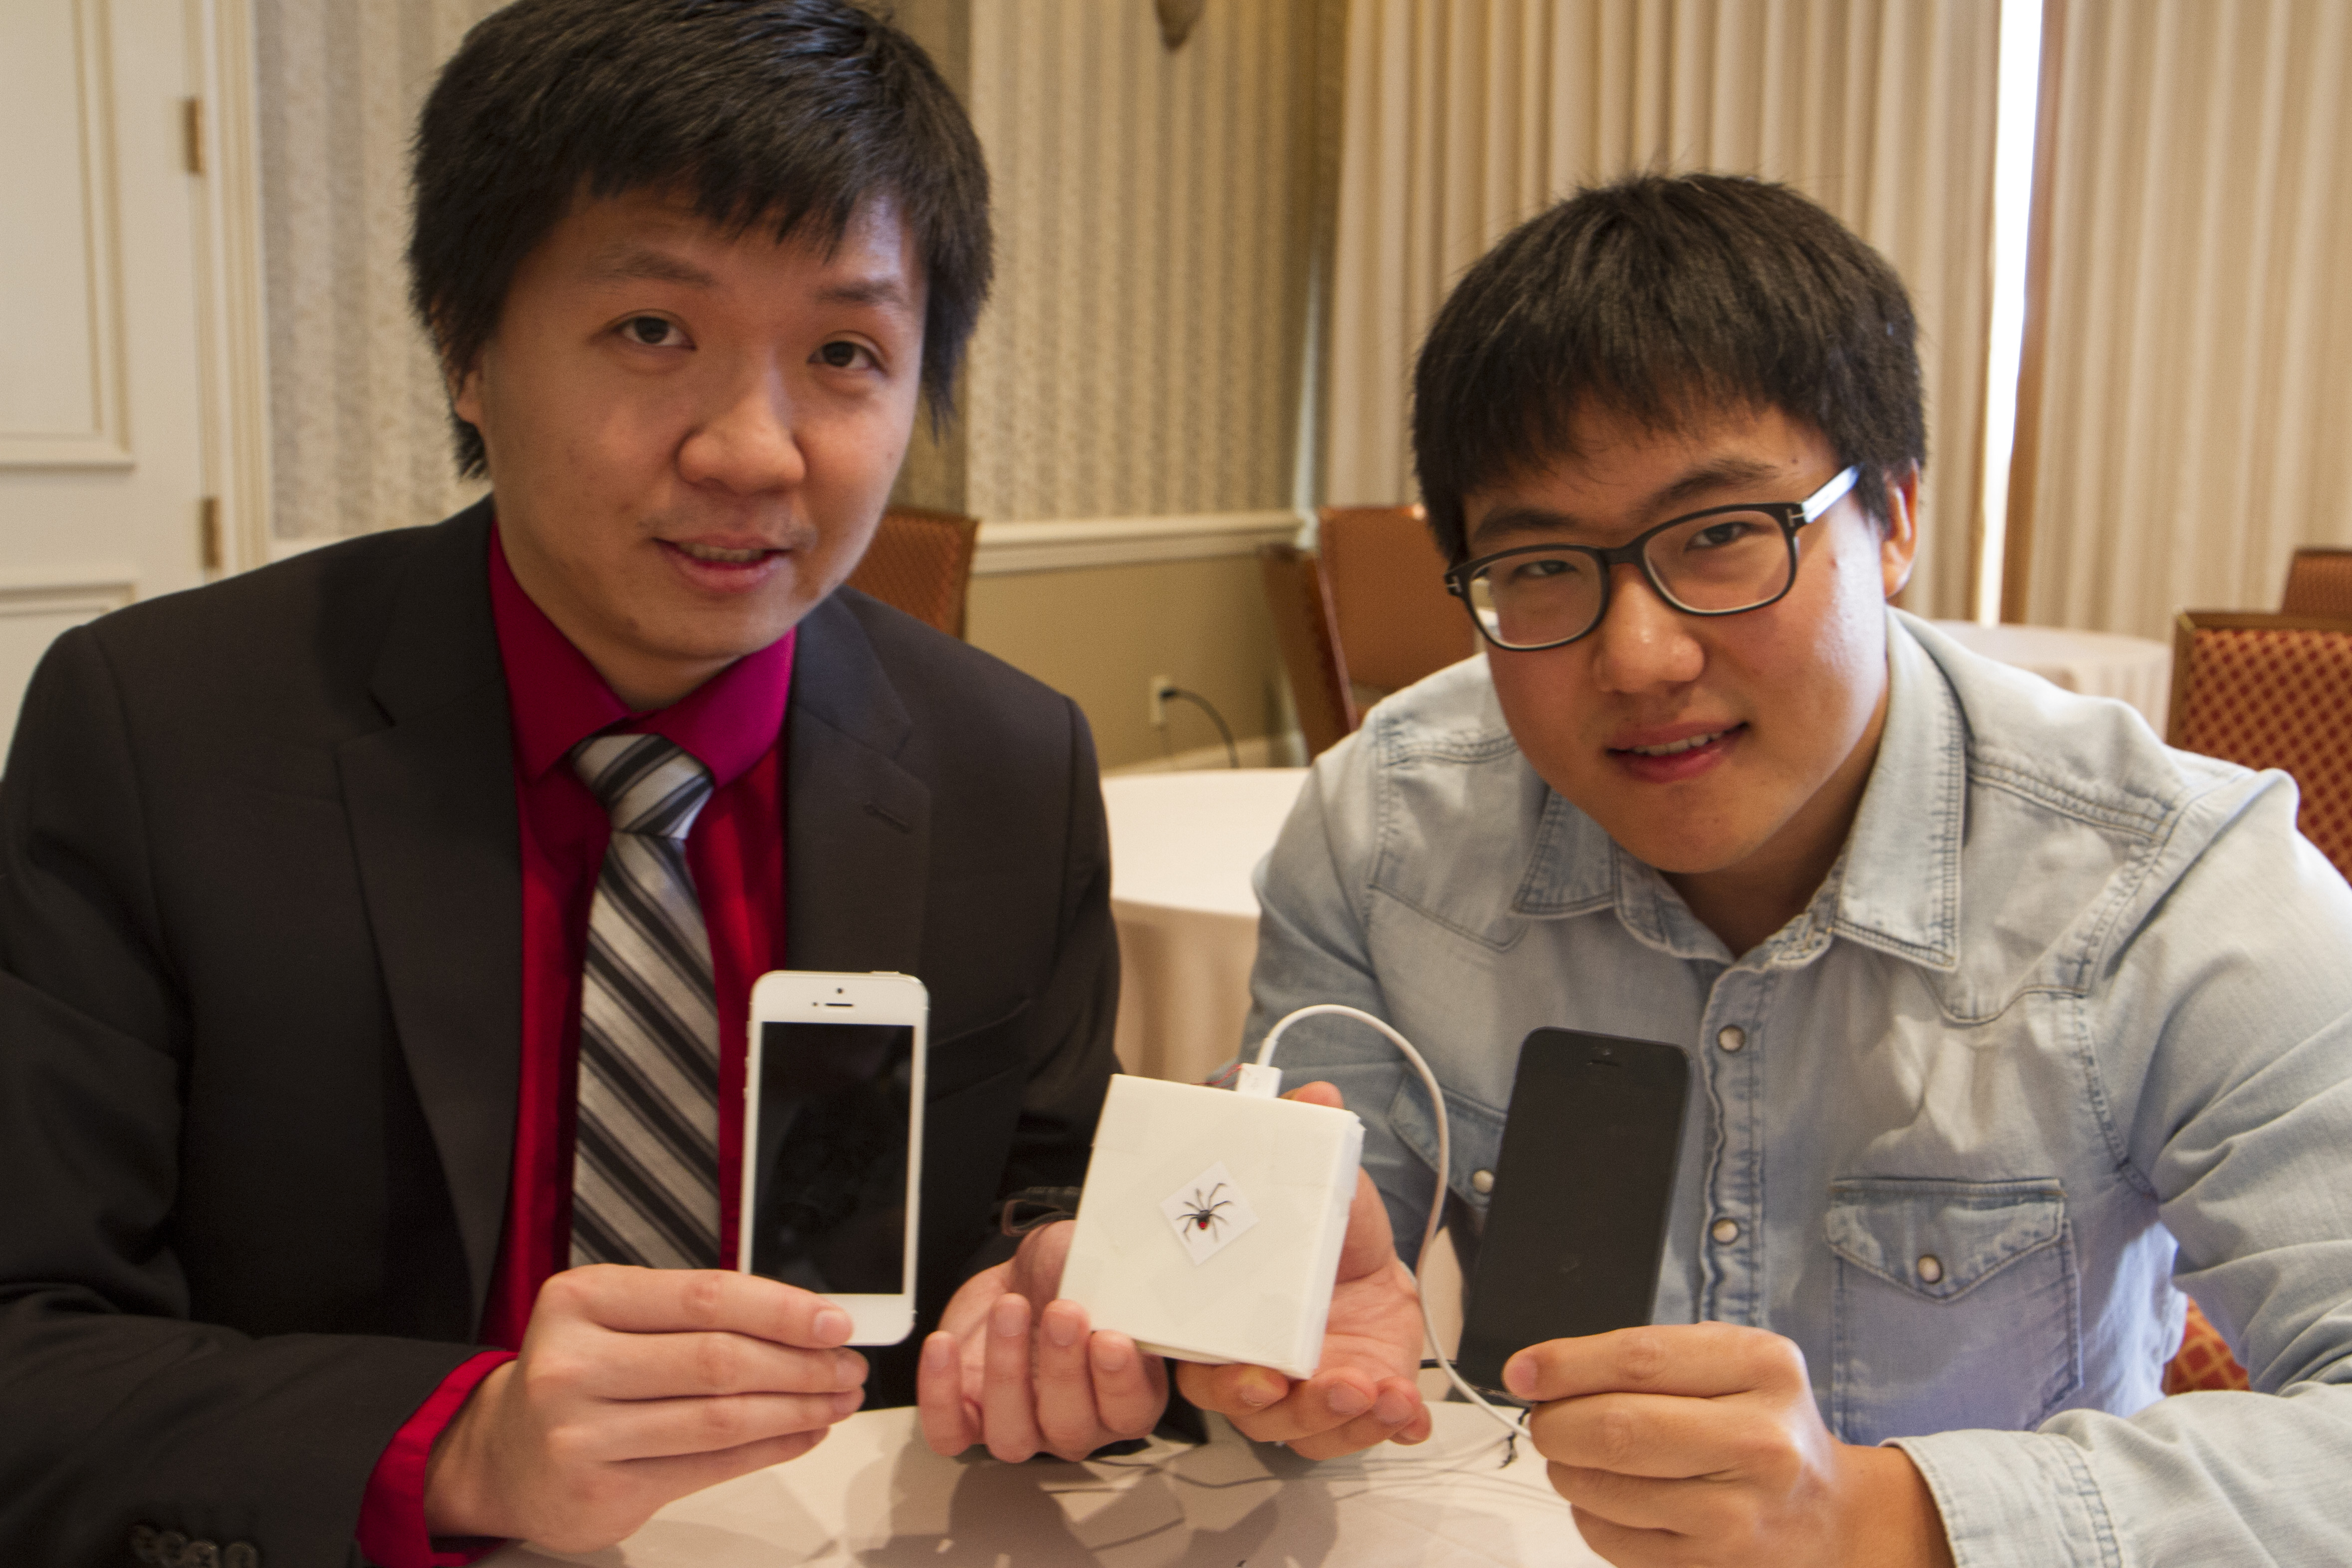 Hacked iPhone chargers could let snoops spy on devices ...